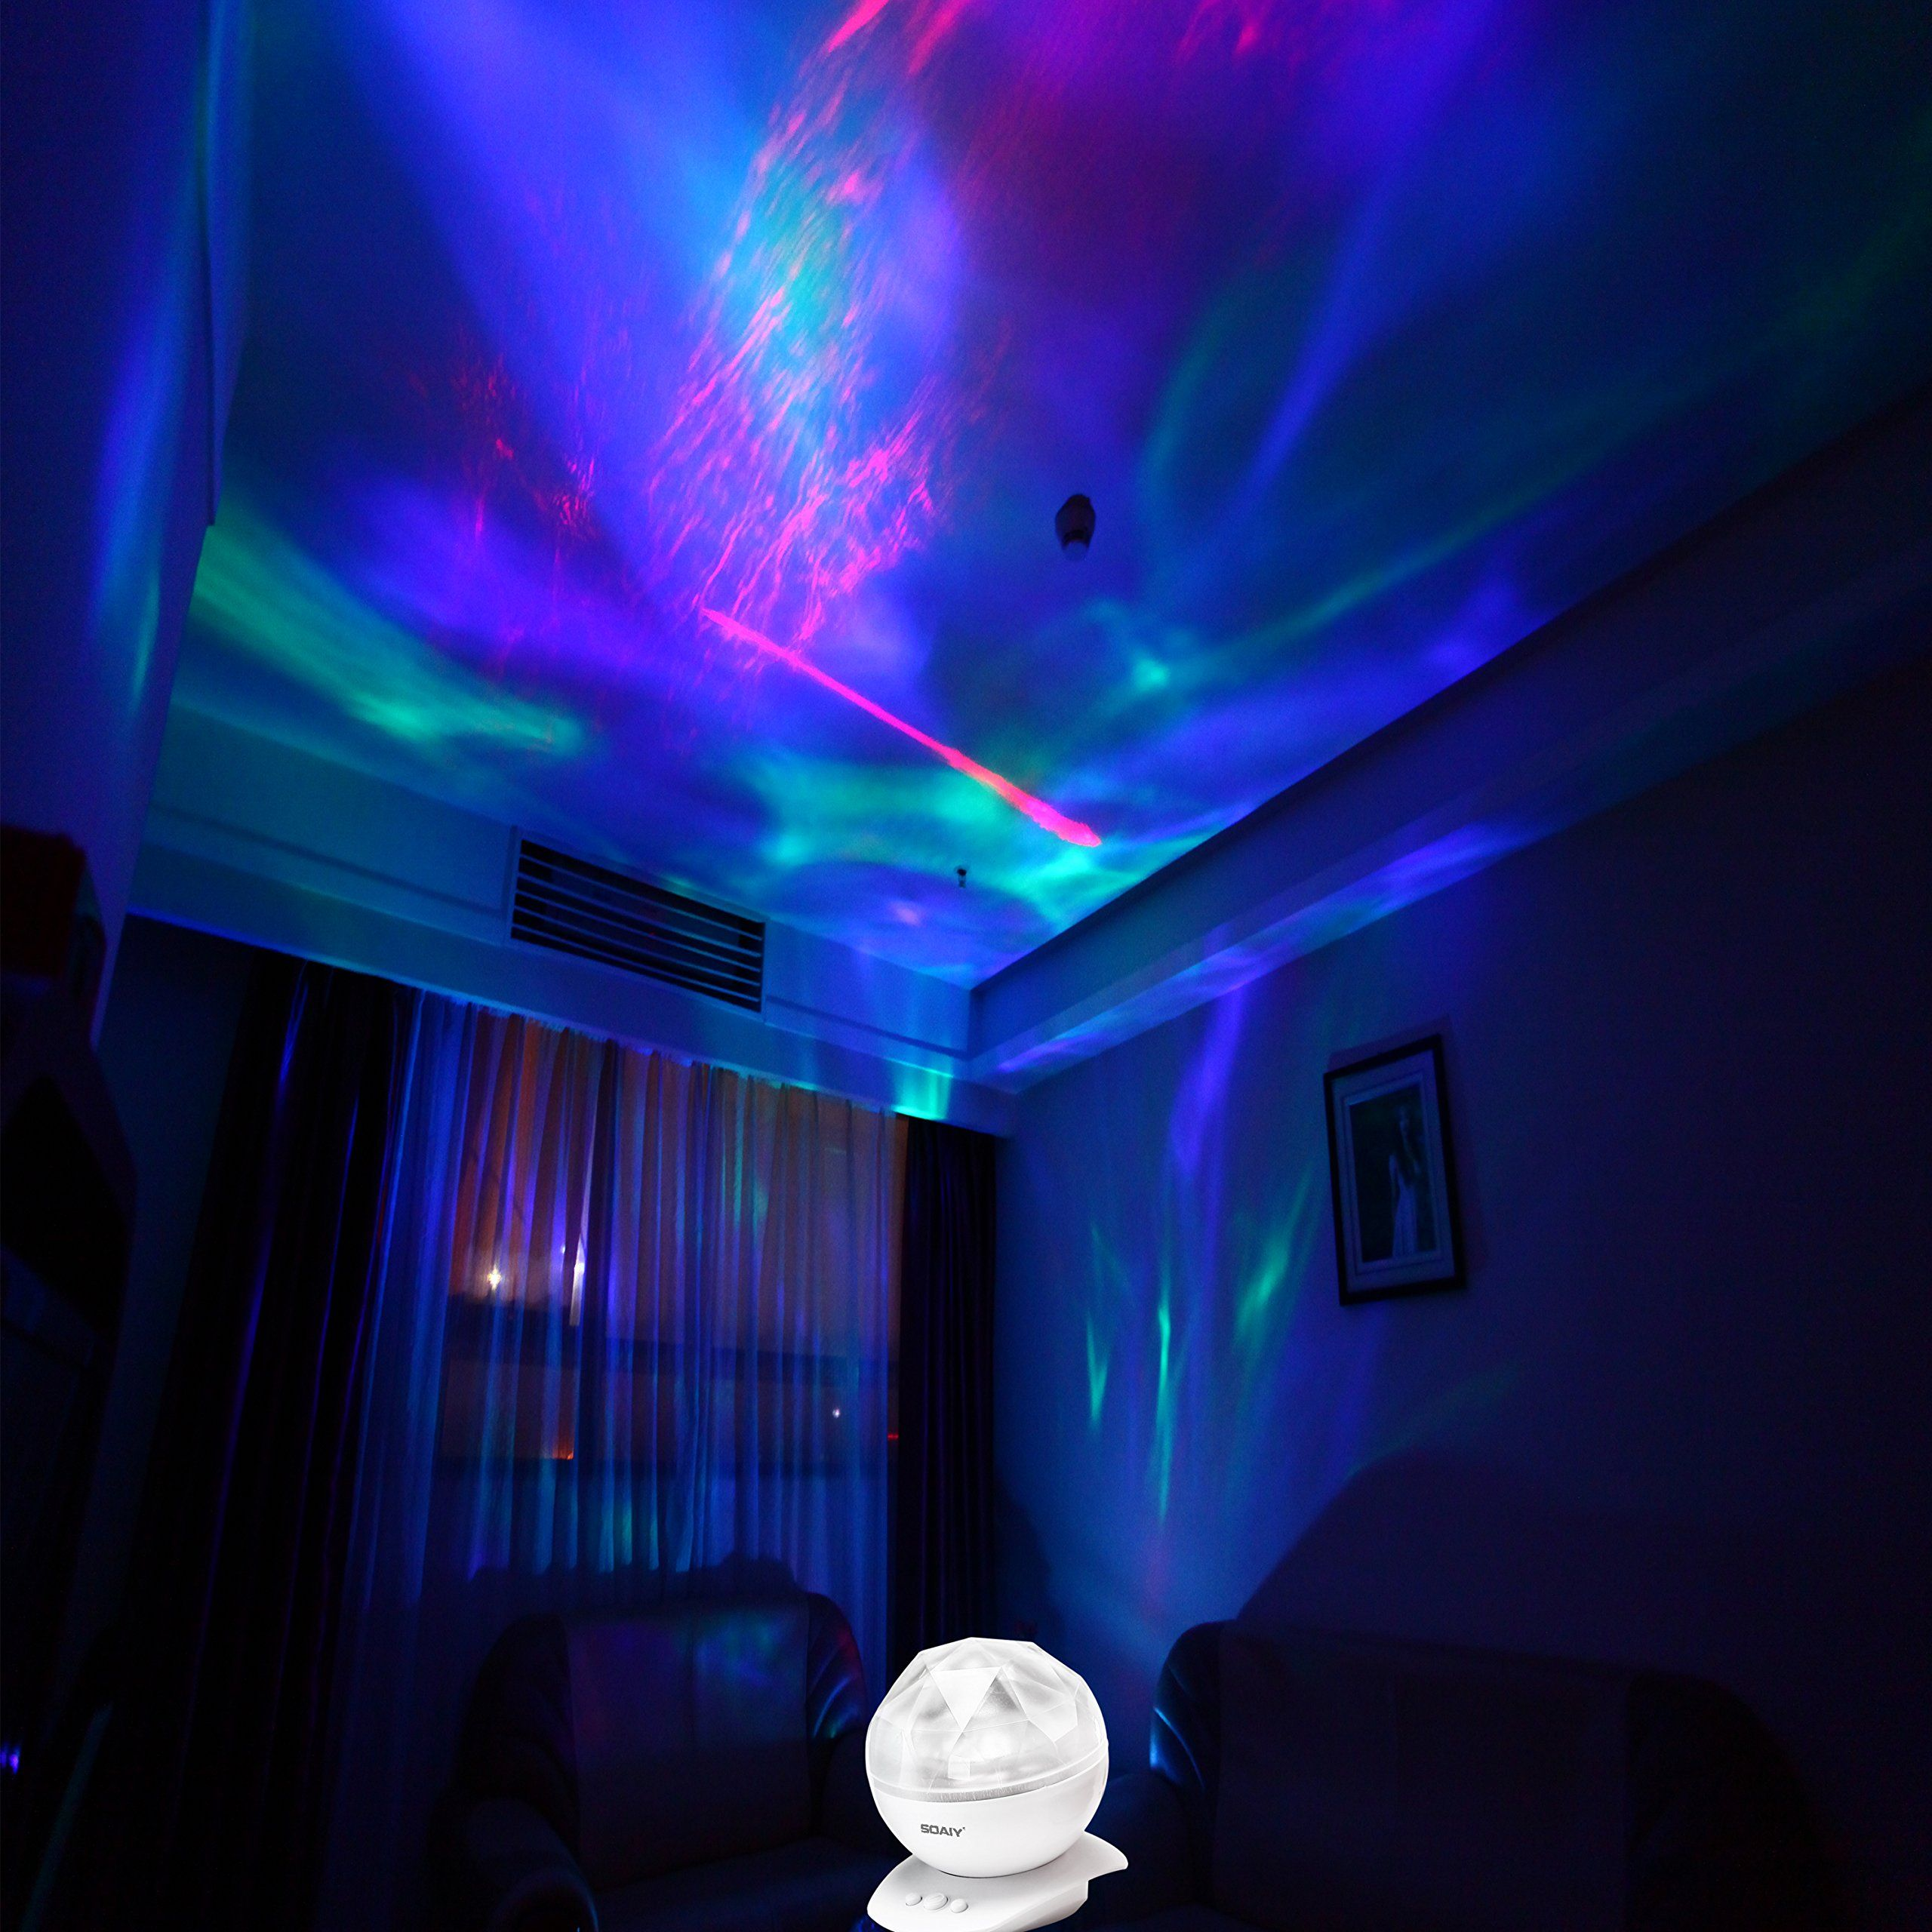 Bedroom Colors Pictures Mood Lighting Bedroom Classic Bedroom Ceiling Design Bedroom Ideas Hgtv: Soaiy® SY-NL04 Color Changing Led Night Light Lamp